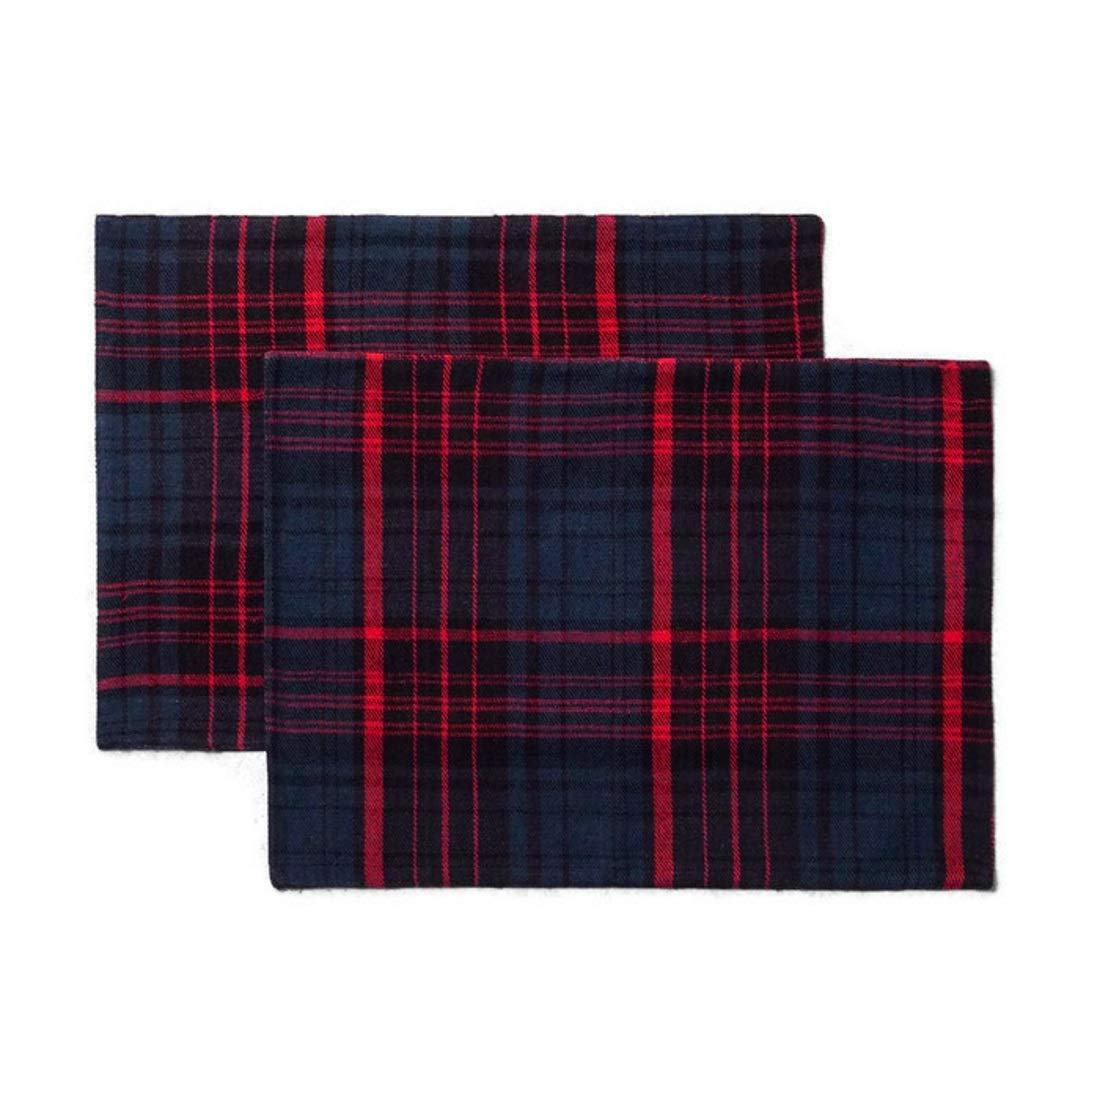 Set of 2 Plaid Red//Blue Hearth /& Hand with Magnolia